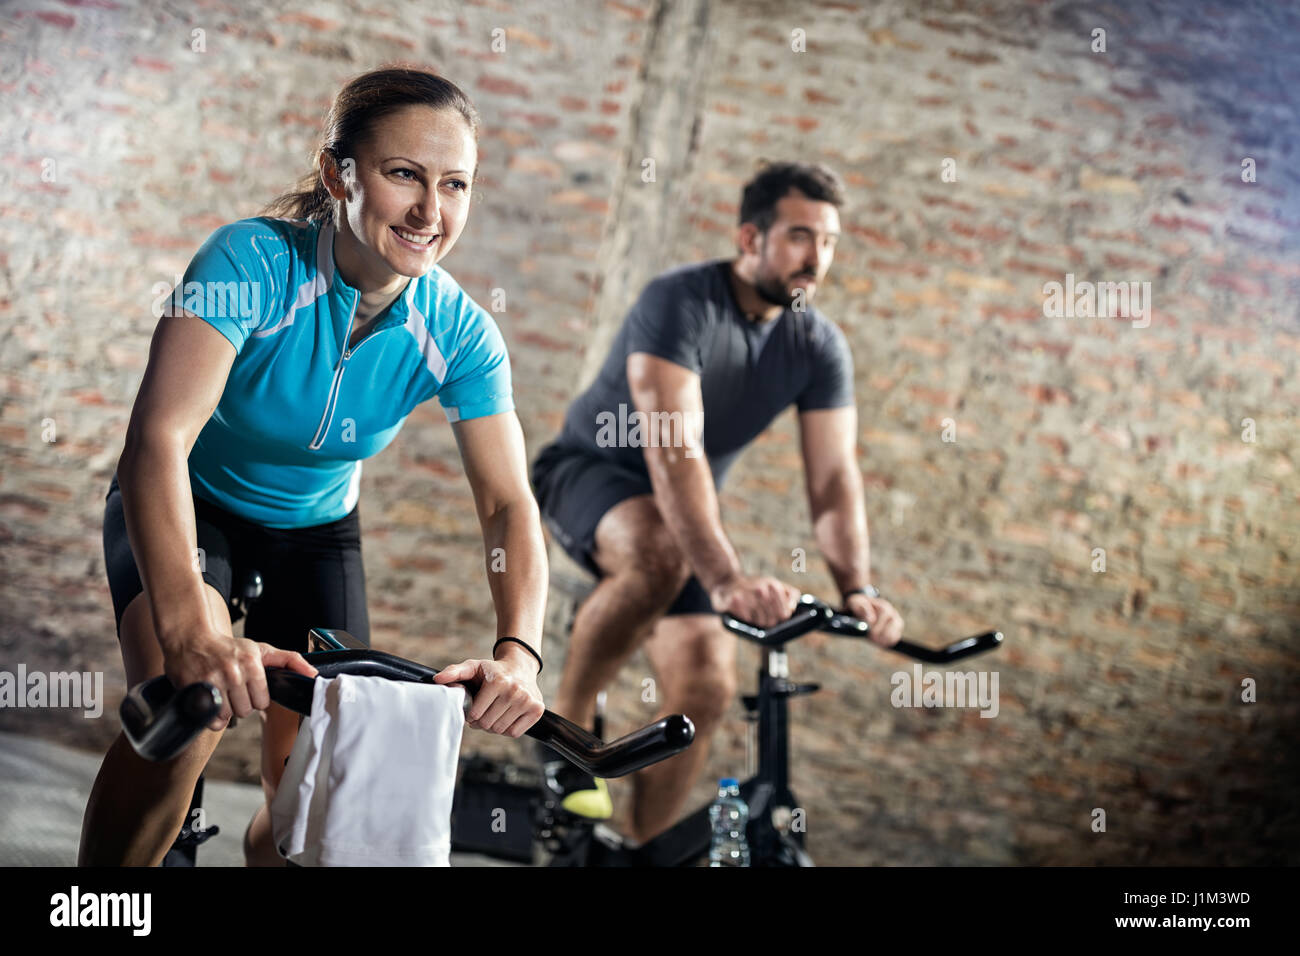 Smiling woman in sports clothing on cycling fitness training - Stock Image